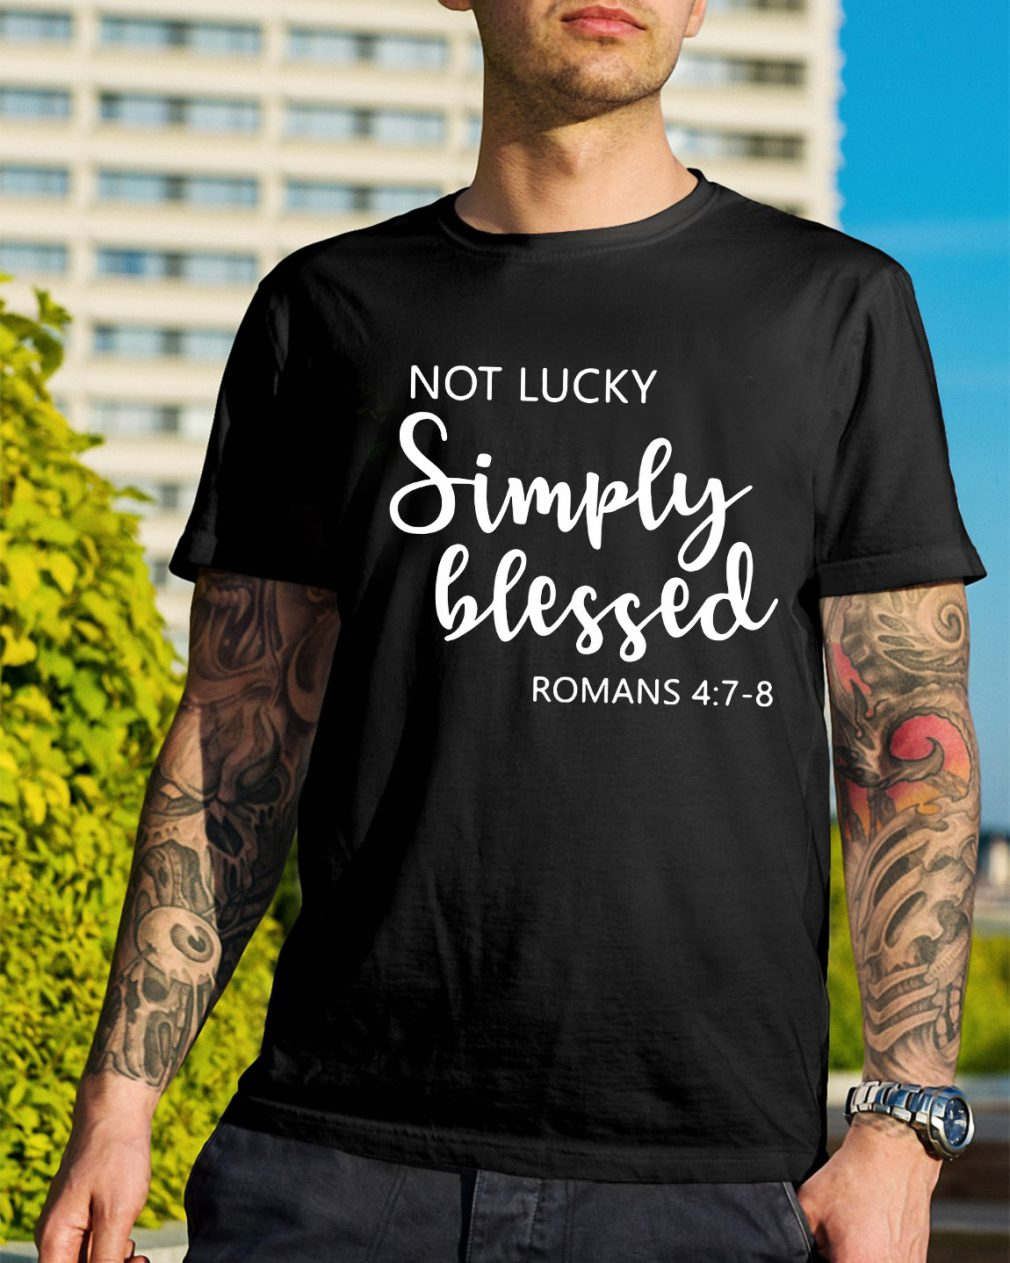 Not lucky simply blessed Romans 4:7-8 shirt